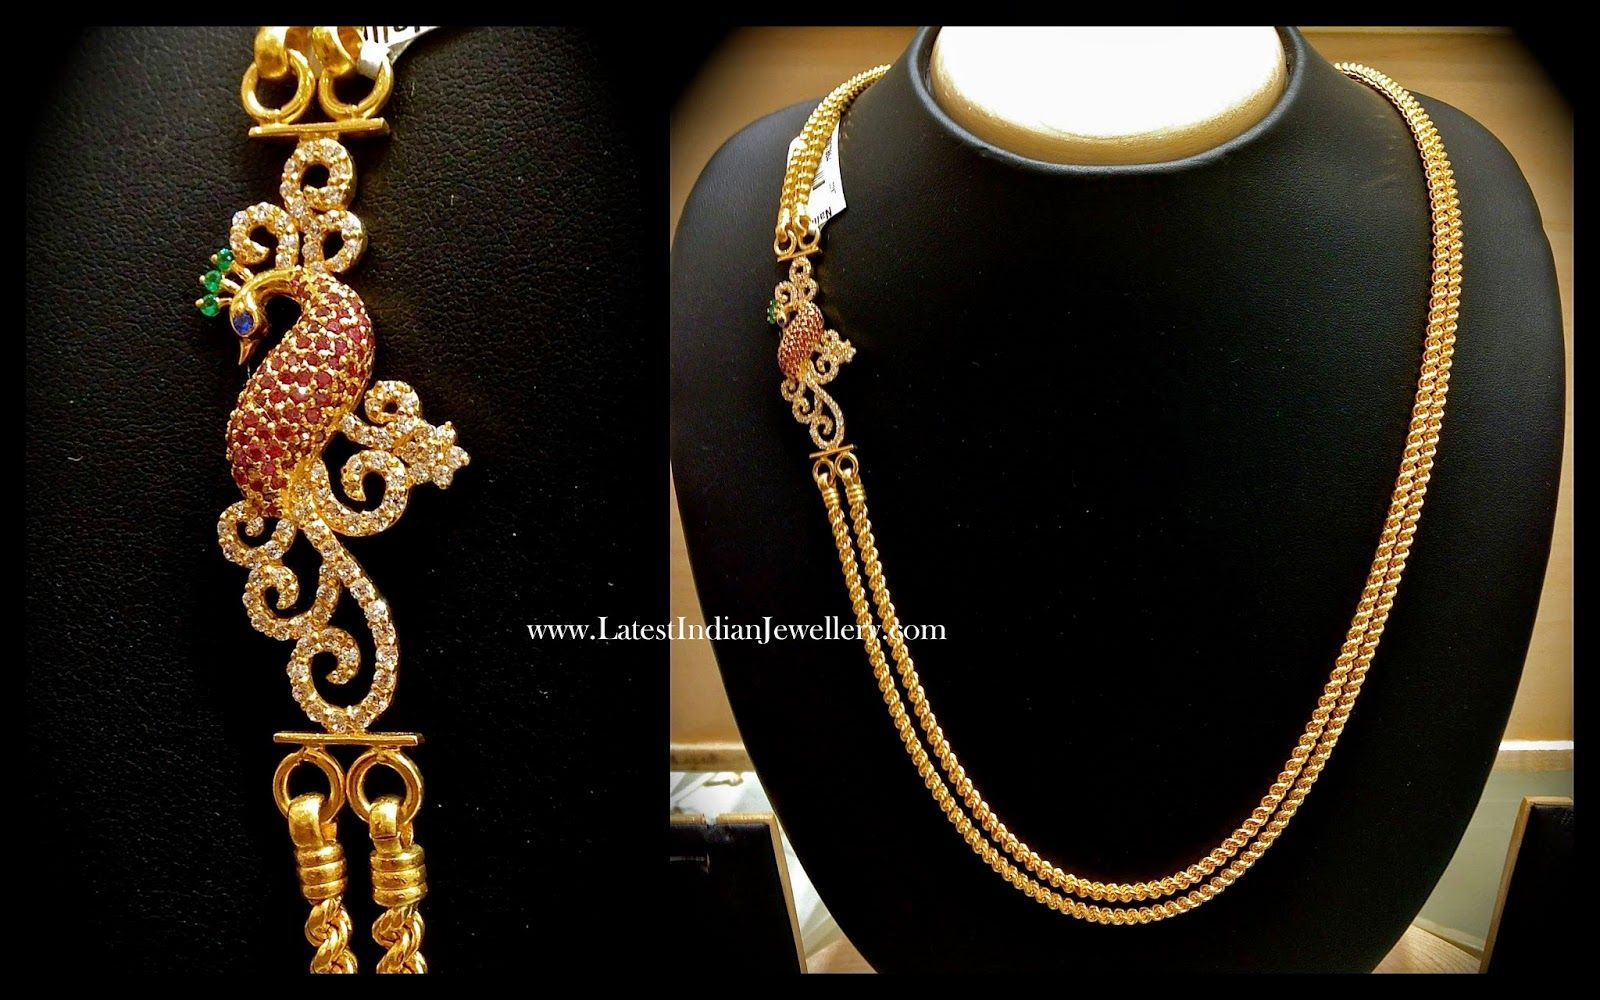 Peacock Design Mugappu Gold Chain | Indian jewelry, Peacocks and ...